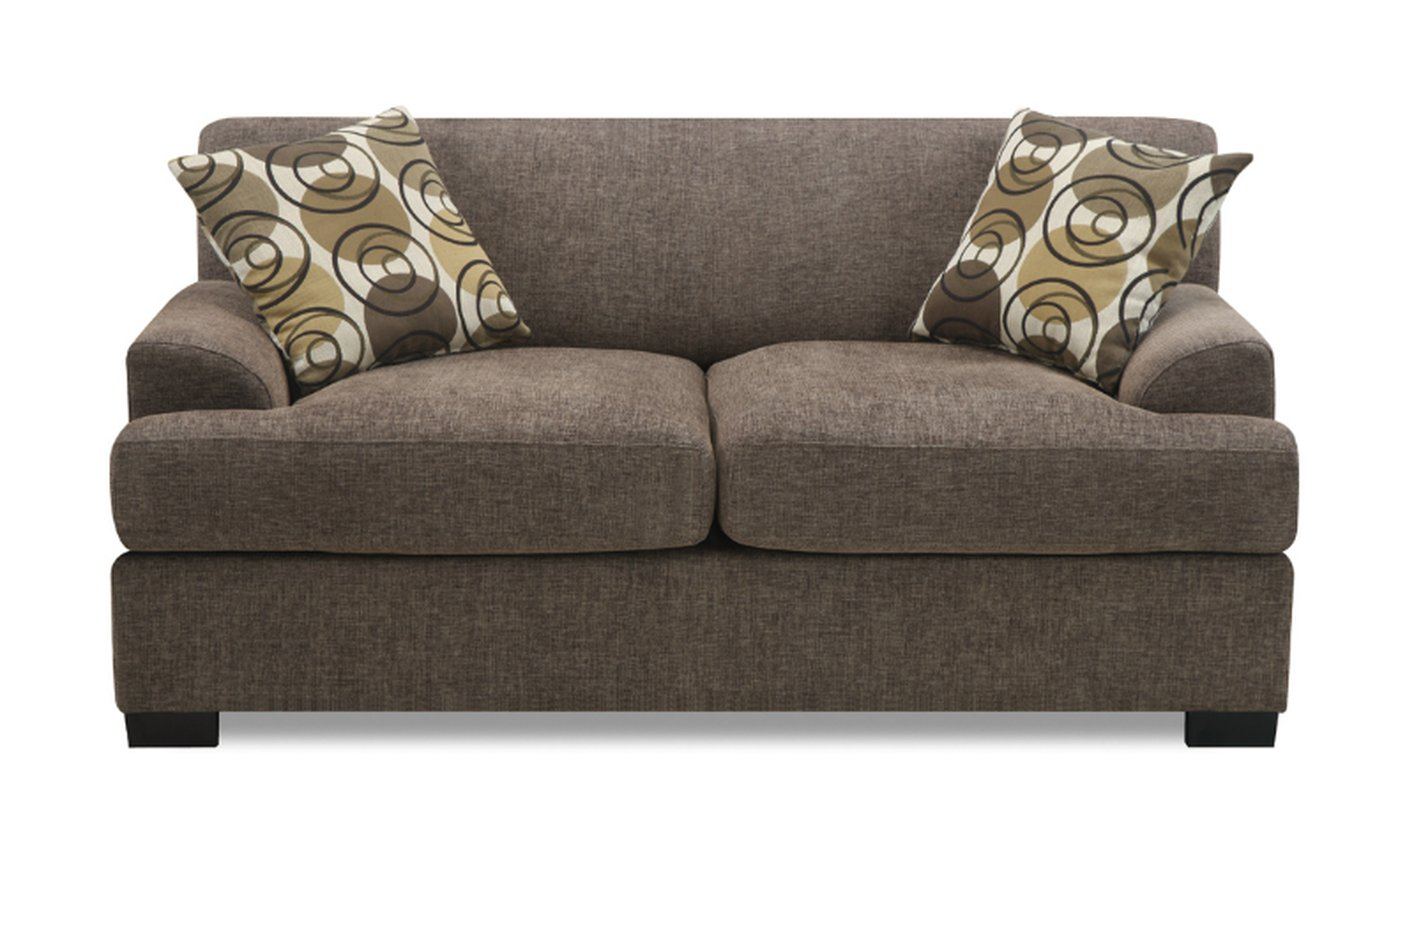 Sectional Sofas Montreal On Sale Beige Fabric Loveseat - Steal-a-sofa Furniture Outlet Los